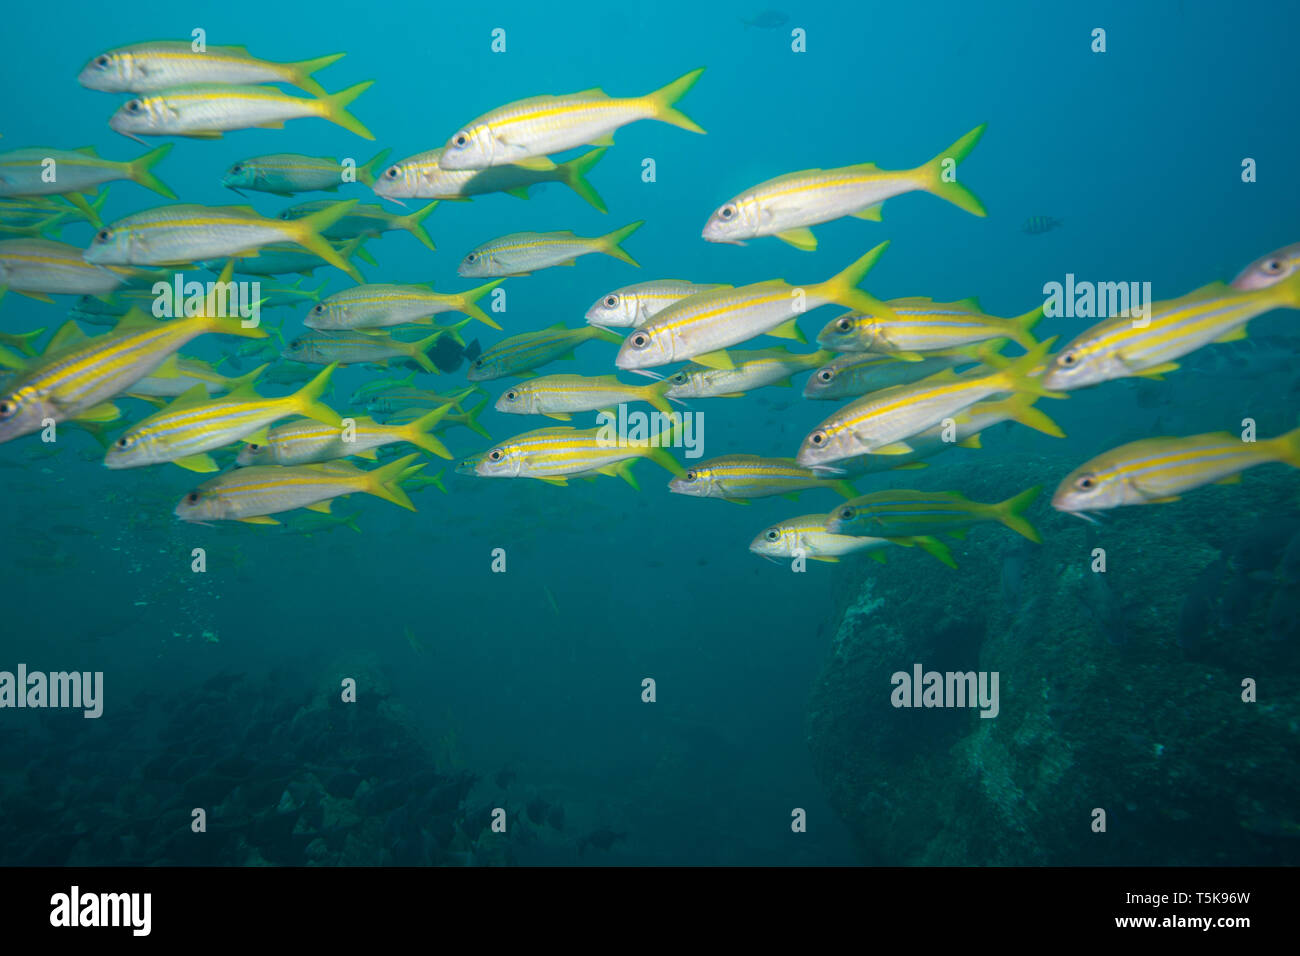 Shoal of fish, Hallaniyat Islands, Oman Stock Photo